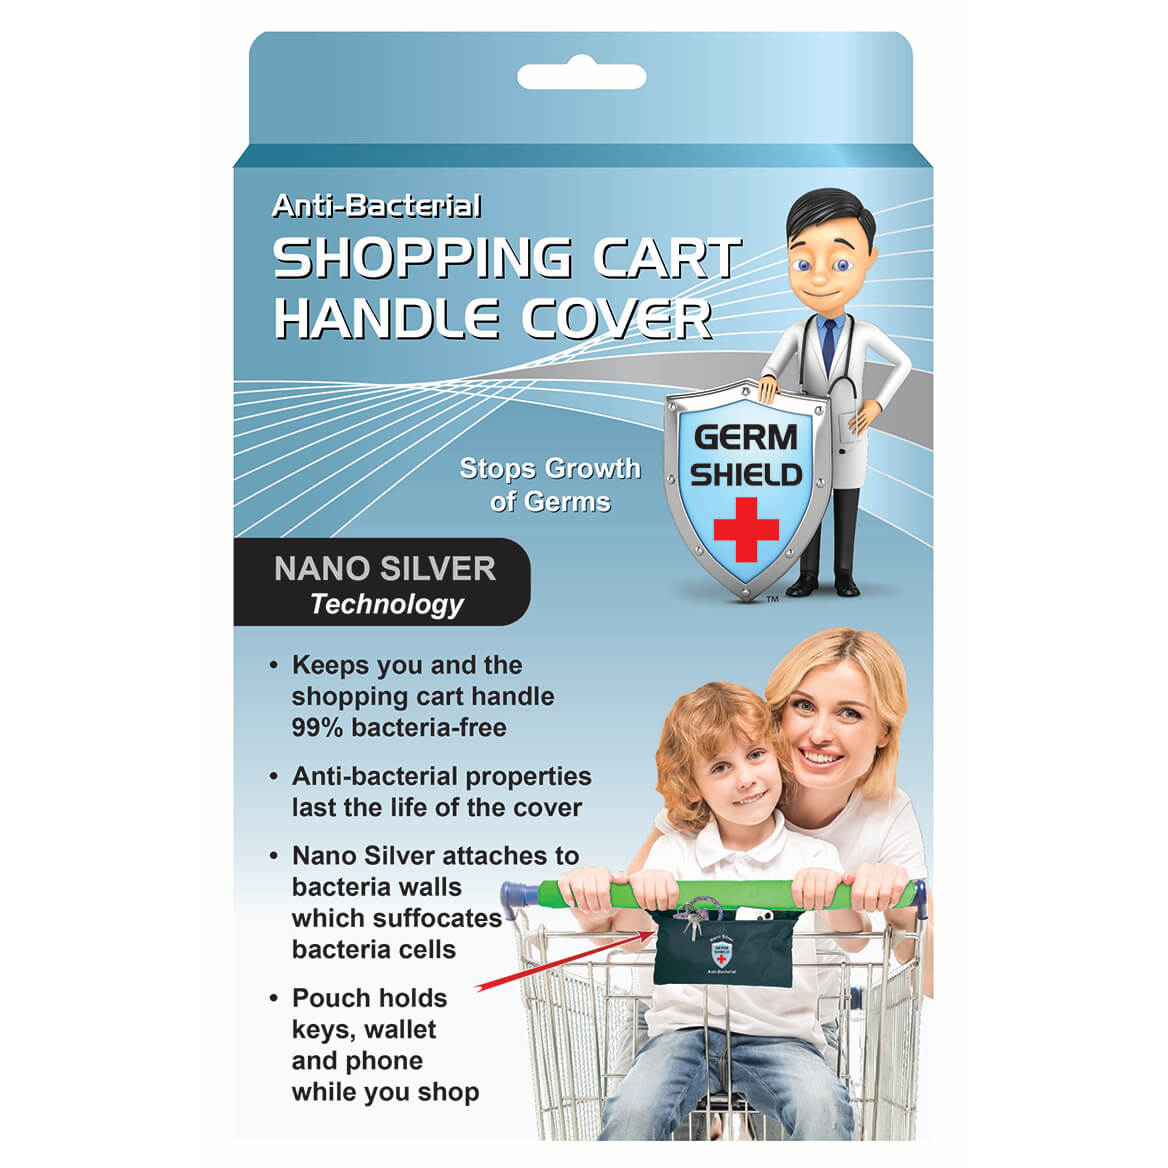 Anti-Bacterial Shopping Cart Handle Cover-371752